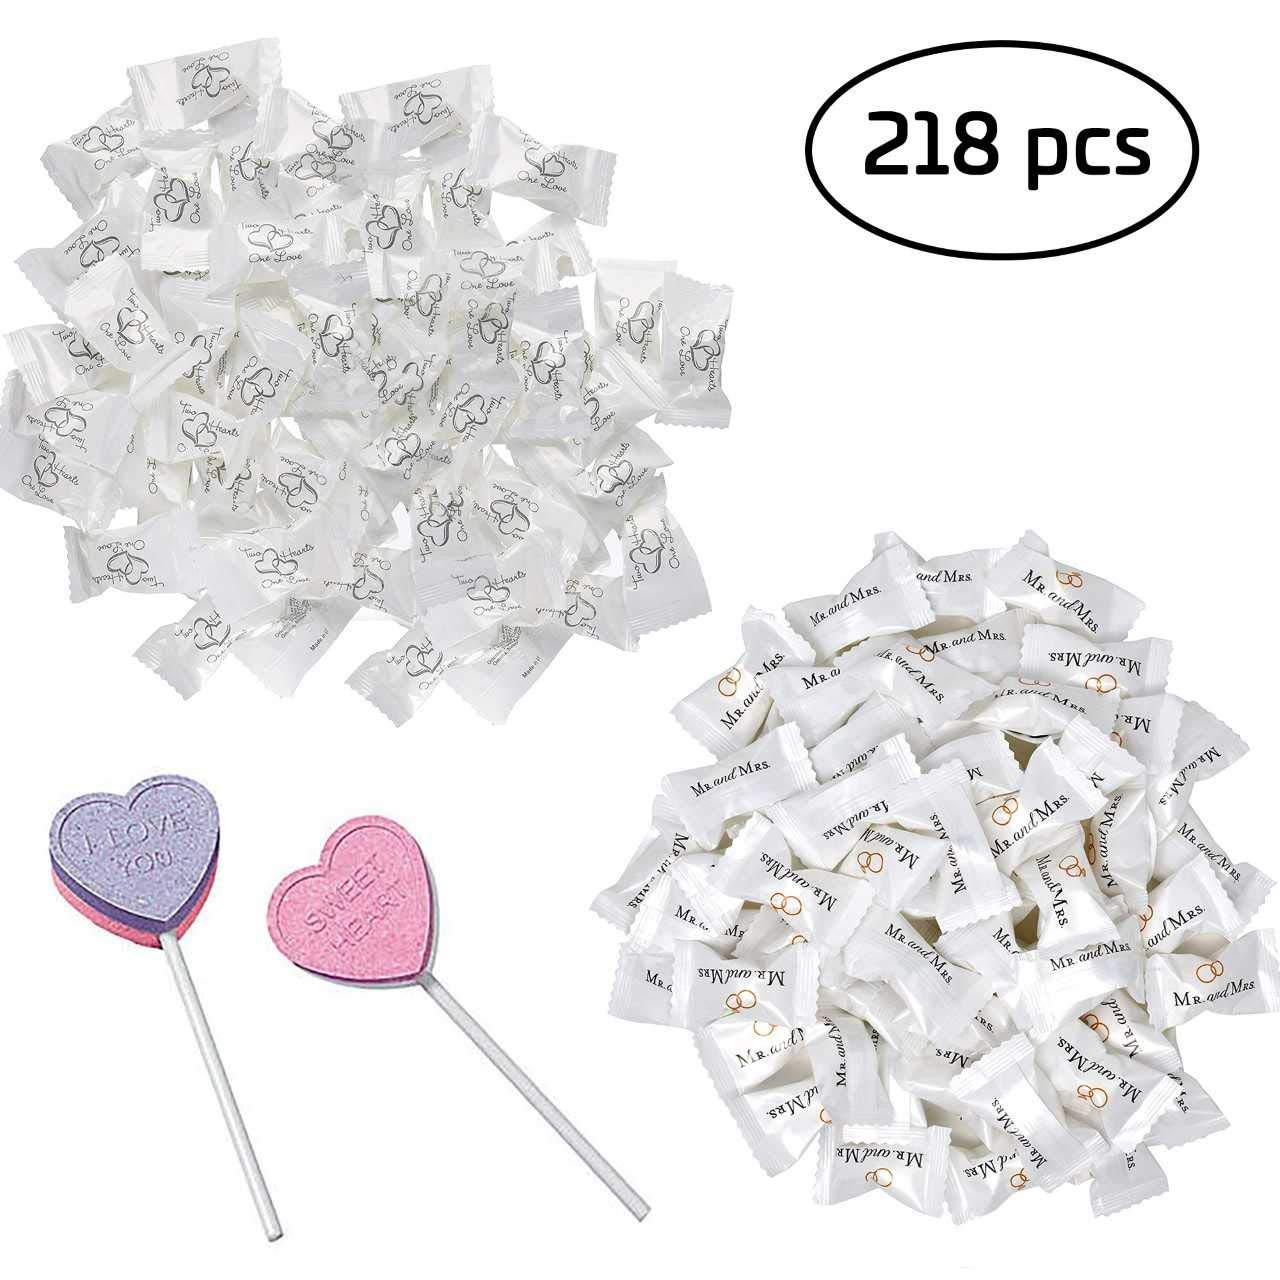 Wedding Candy 218 Pc Bulk Set | 216 Wrapped Buttermints and 2 Bonus Heart Lollipops ● Wedding & Engagement Party Favors - 1 Bag of Two Hearts (108 pc) + 1 Bag of Mr. and Mrs. Mints (108 pc)